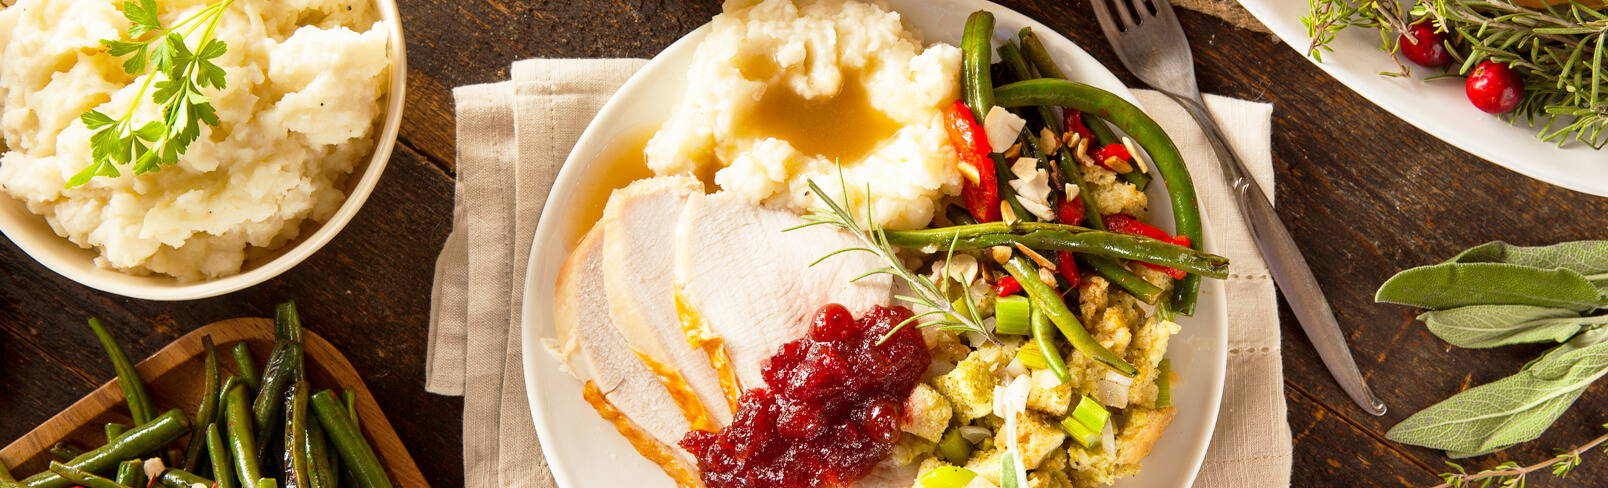 High Quality Organics Express turkey dinner with mashed potatoes and gravy, with stuffing, and cranberry sauce